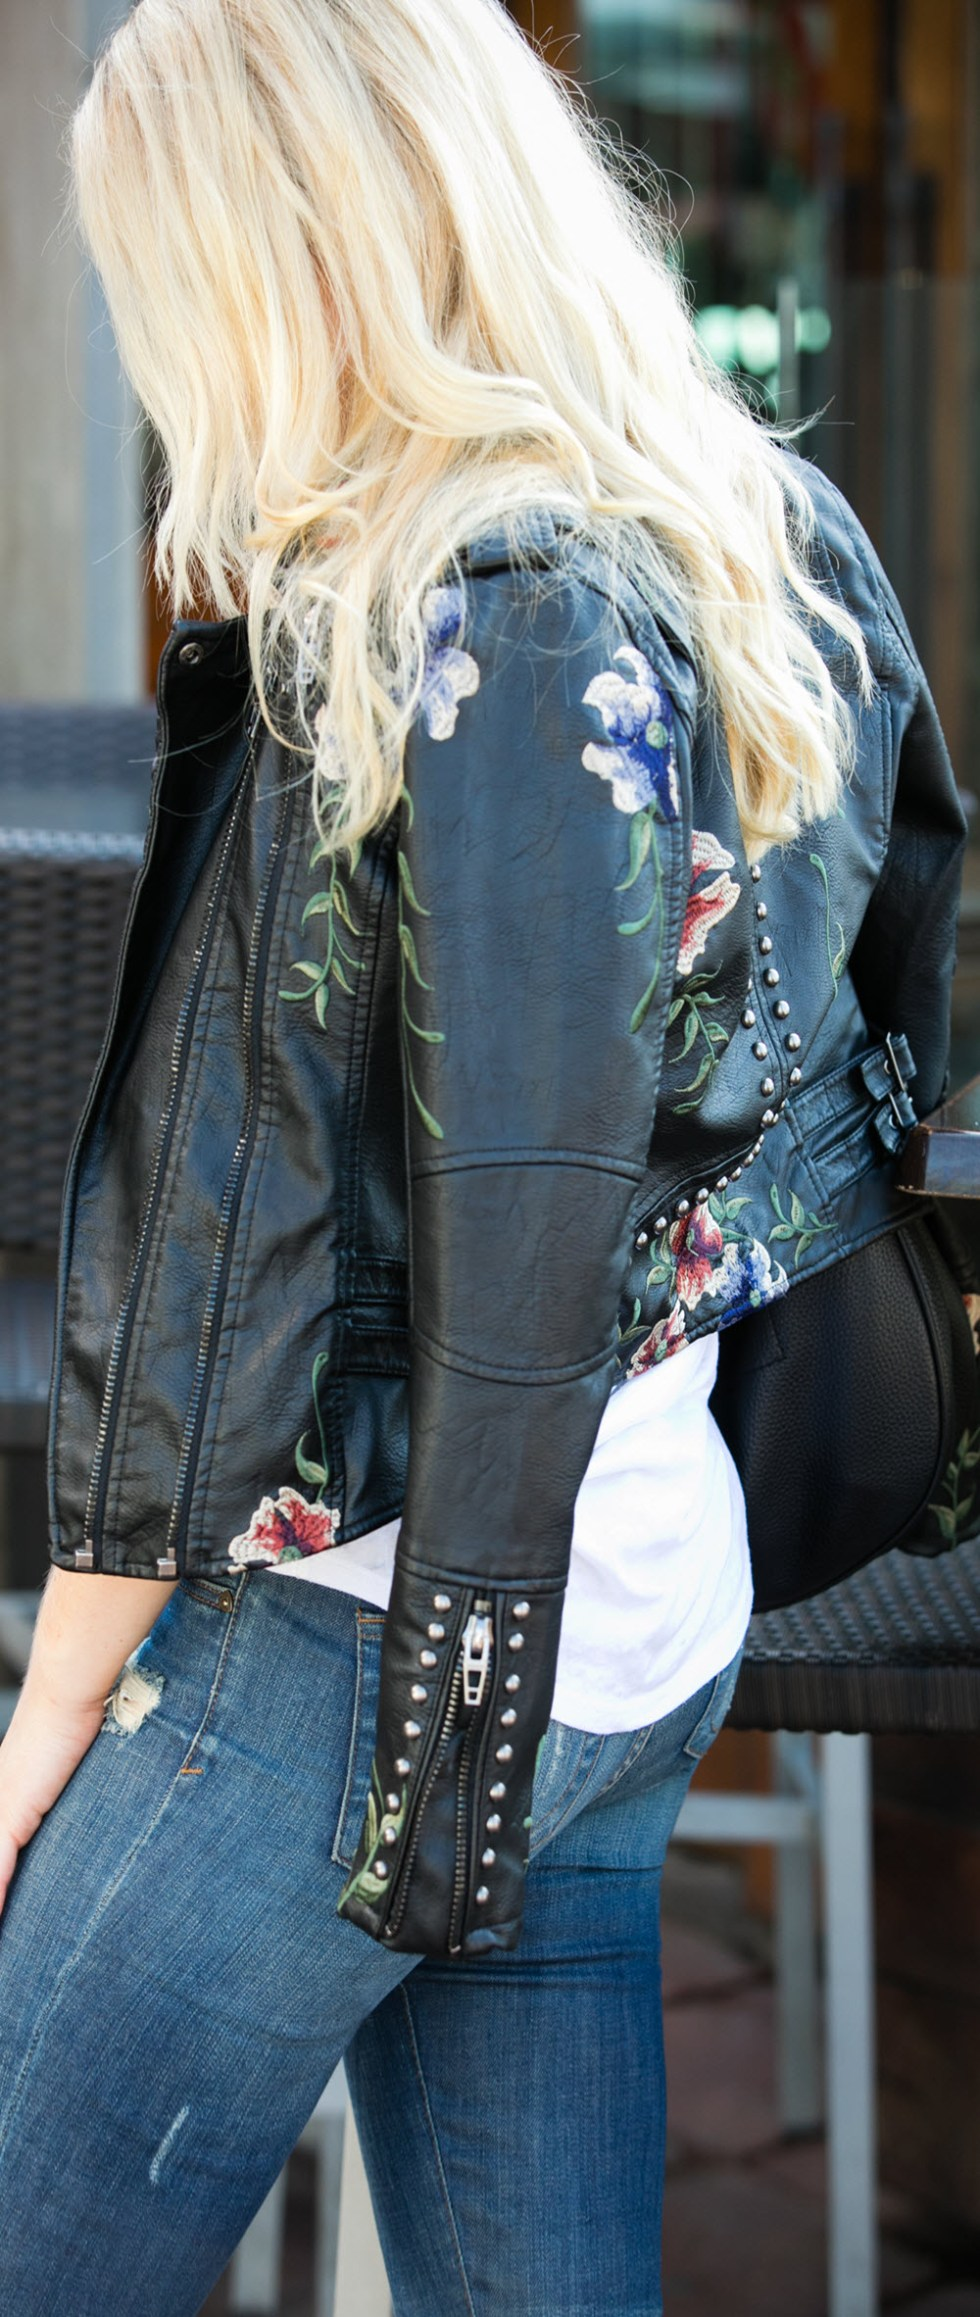 Casual BLANKNYC Embroidered Leather Jacket Outfit w. Distress Jeans for Fall